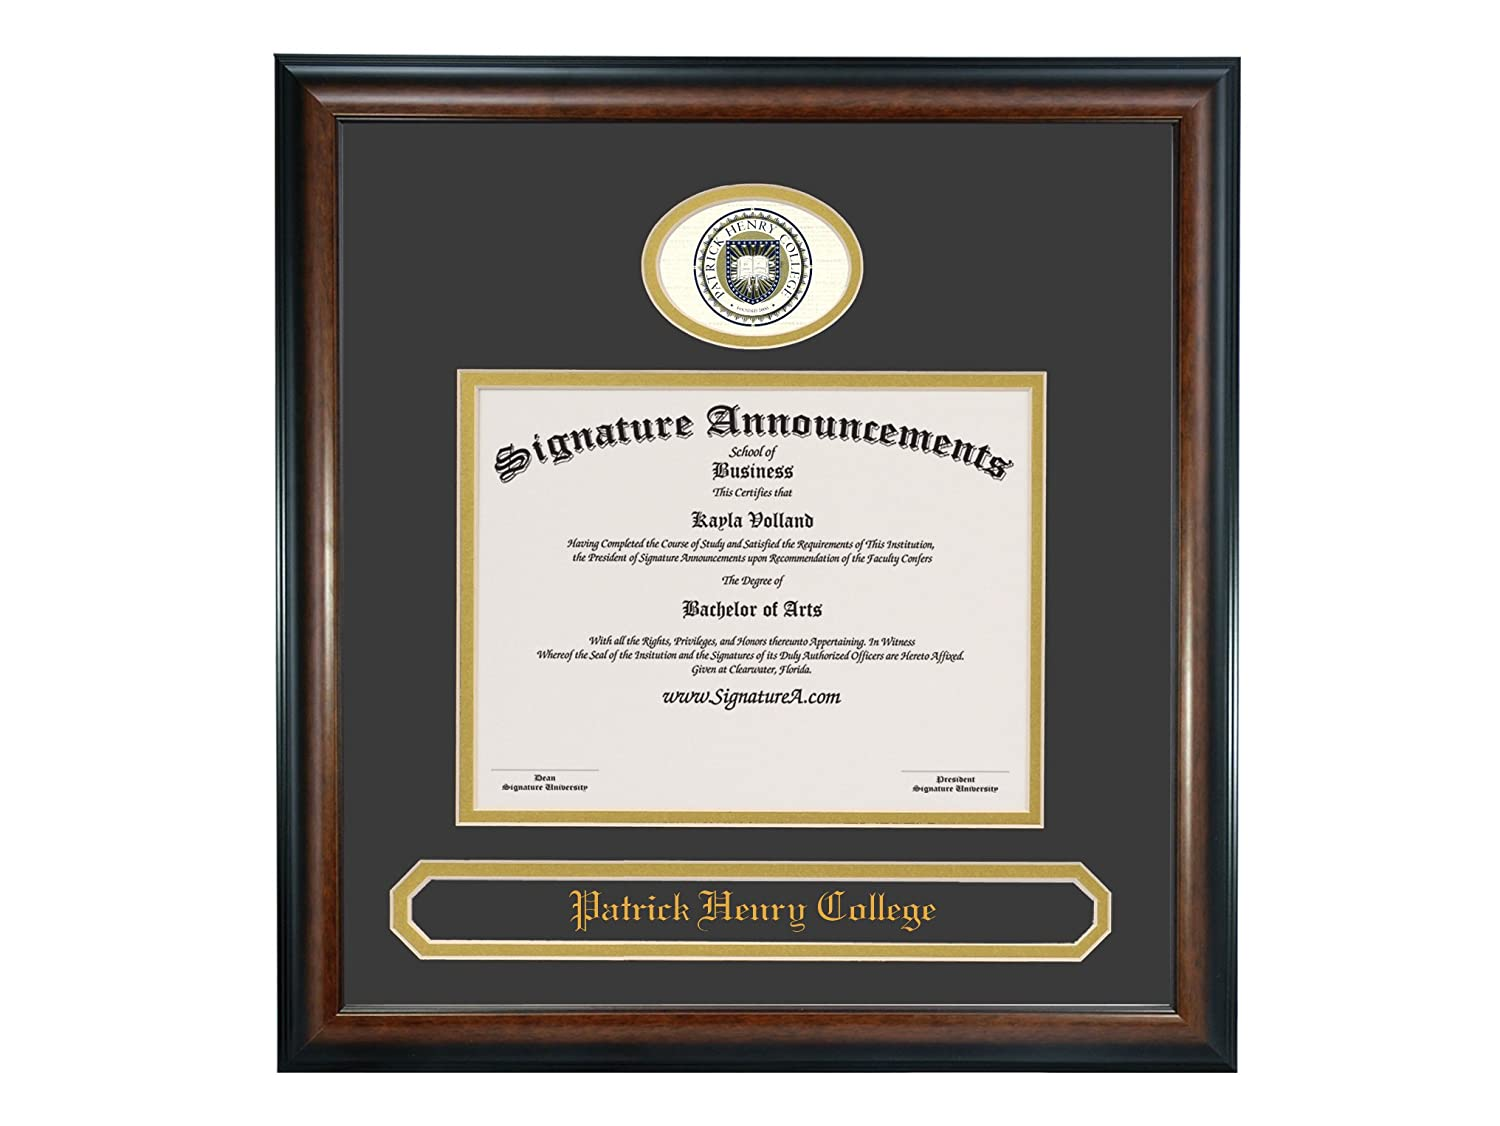 Signature Announcements Patrick-Henry-College Doctorate Sculpted Foil Seal /& Name Graduation Diploma Frame 20 x 20 Matte Mahogany